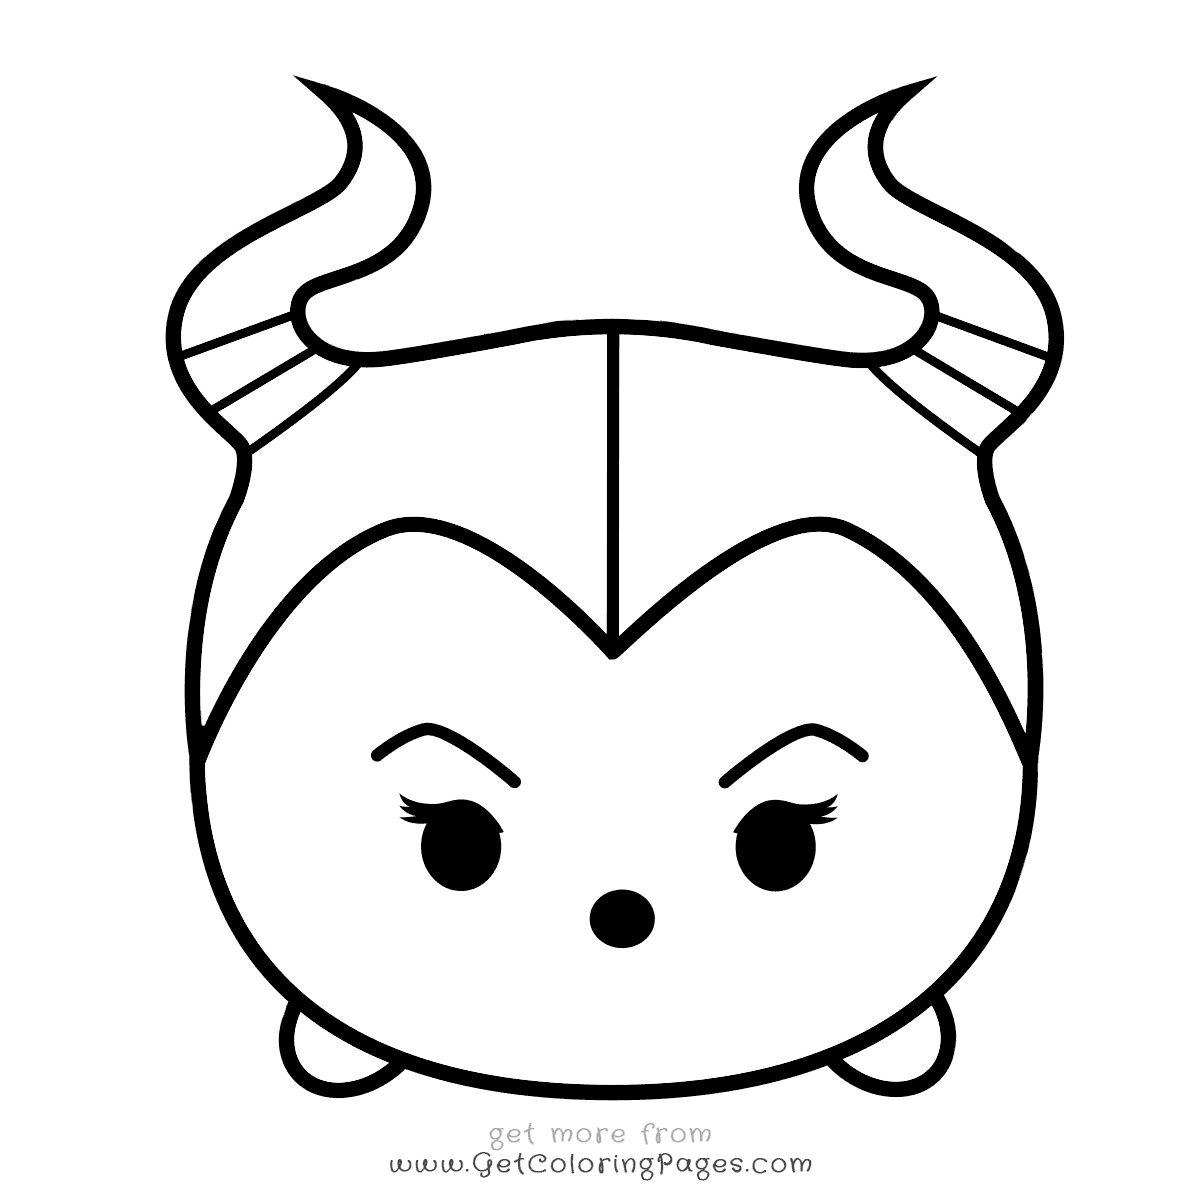 1200x1200 Disney Tsum Tsum Coloring Pages